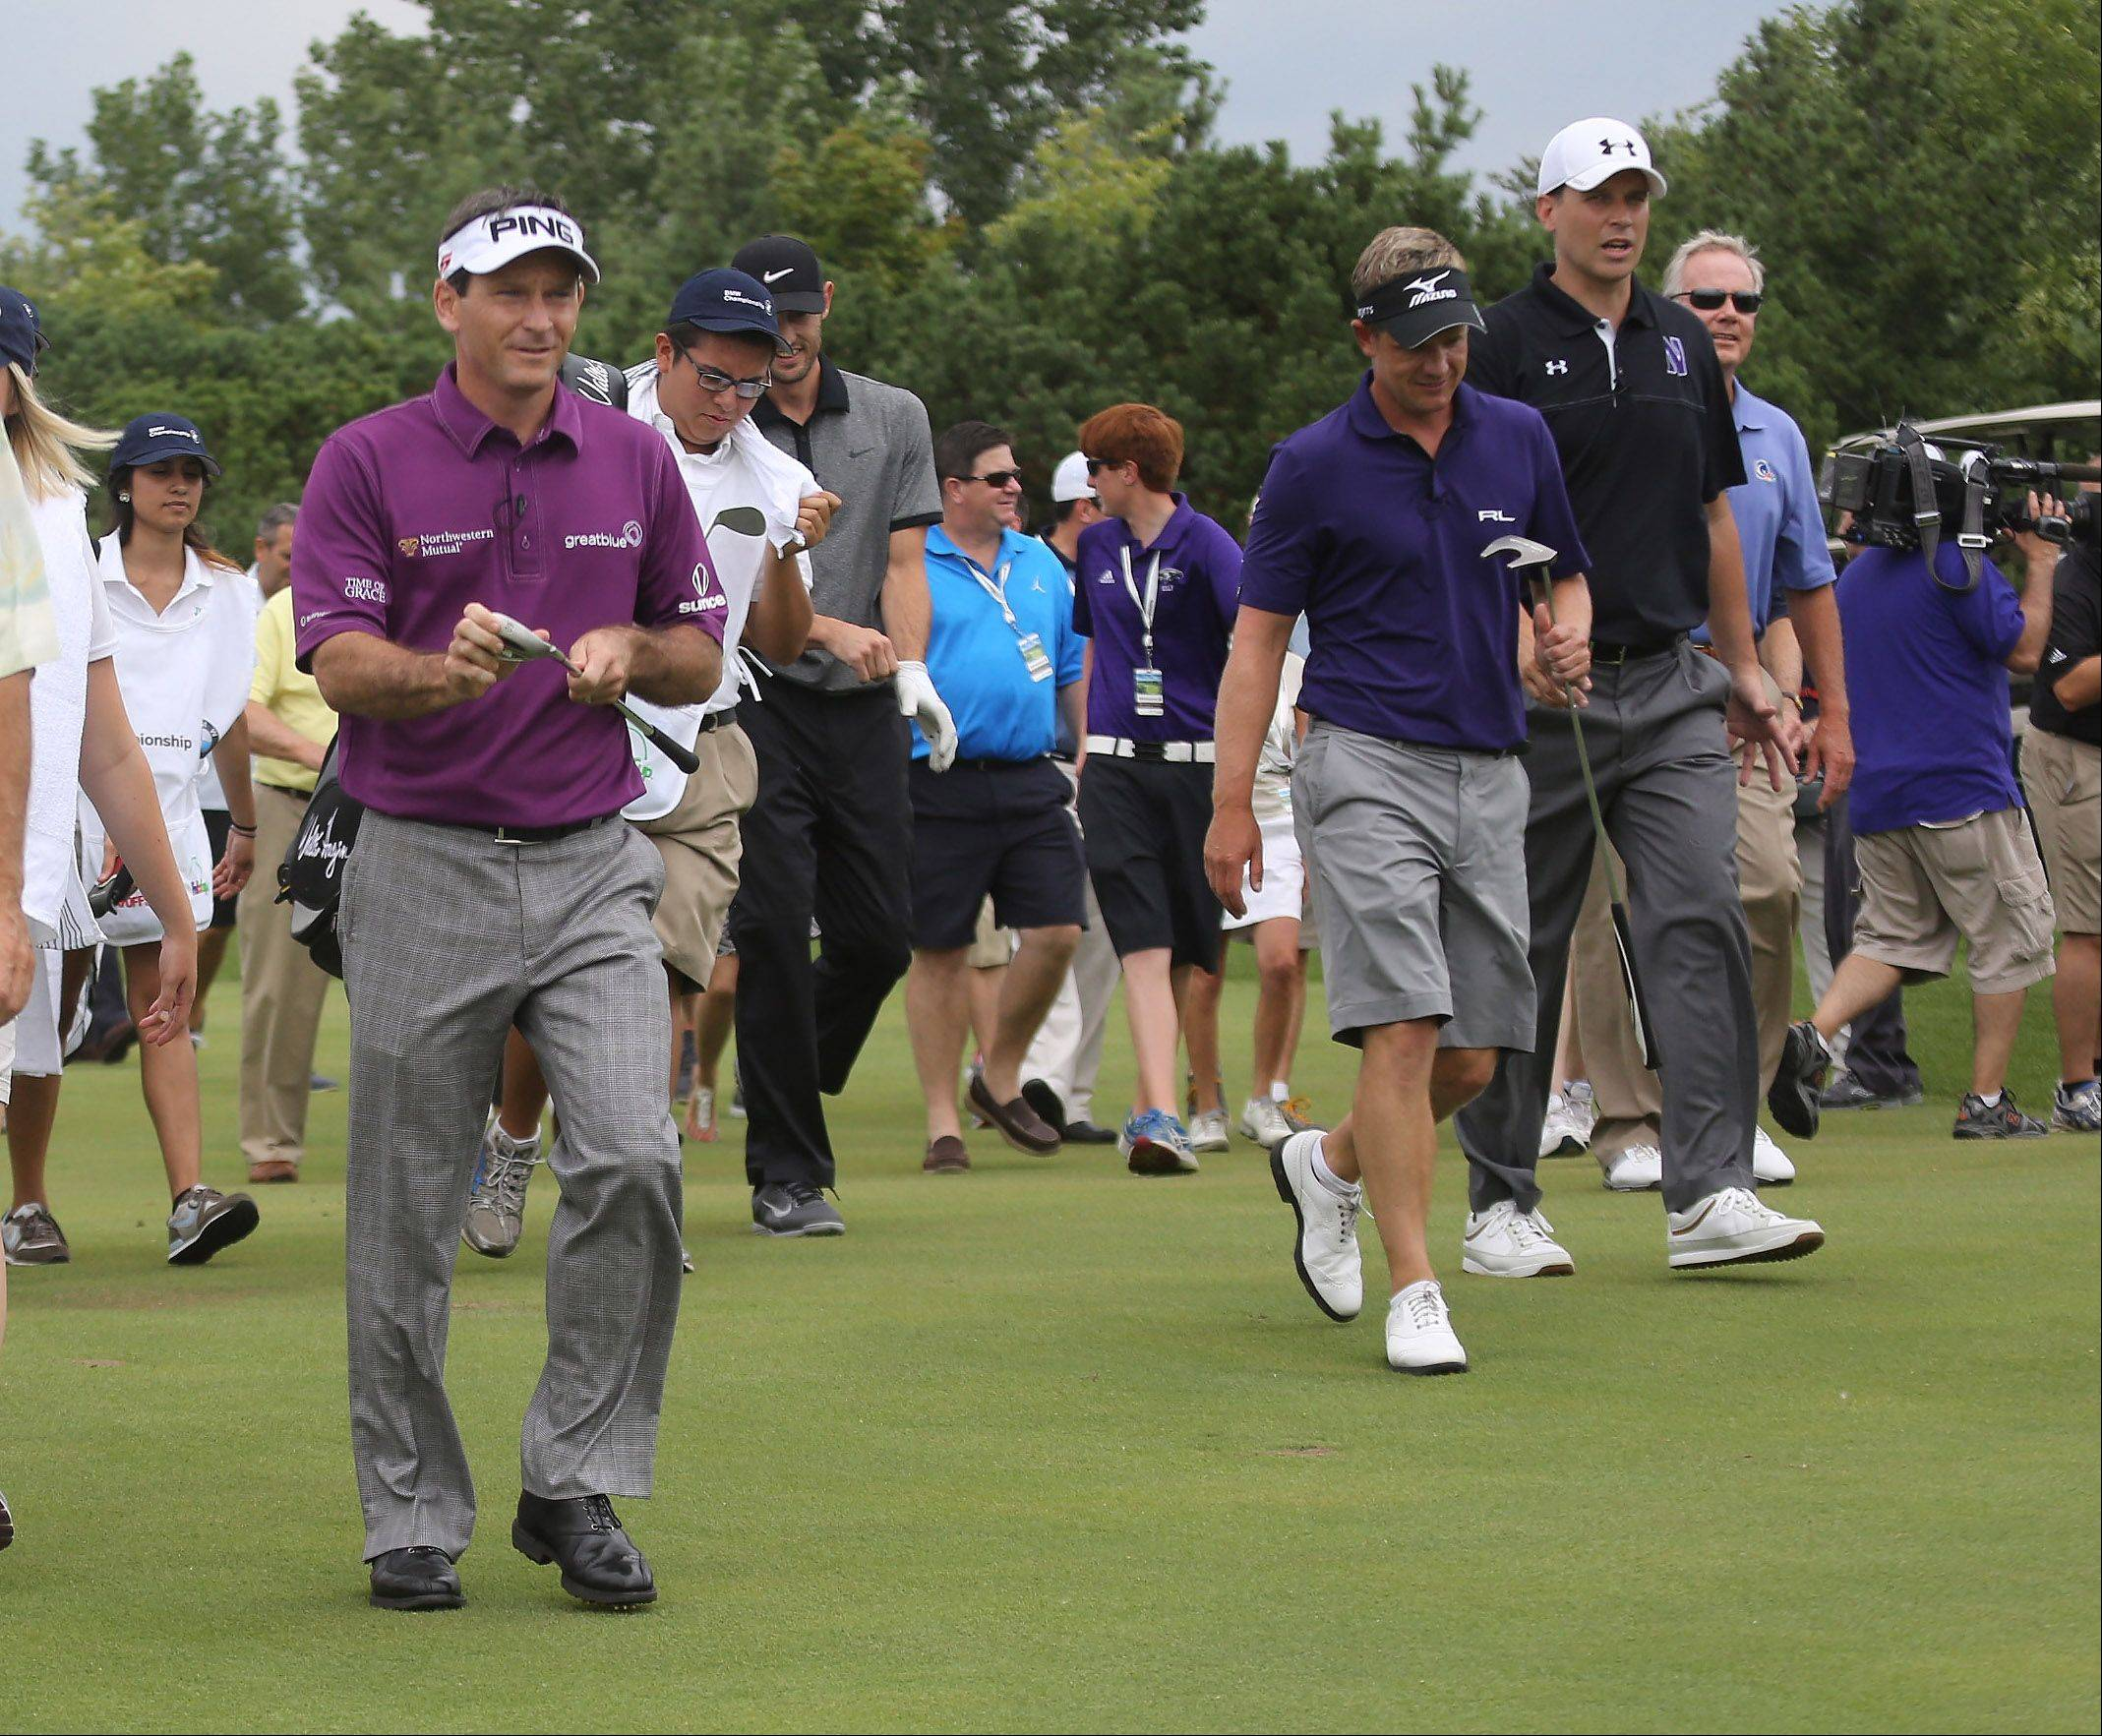 PGA Tour pros Mark Wilson, left, and Luke Donald, center, joined Bulls guard Kirk Hinrich and Northwestern University basketball coach Chris Collins, right, for a BMW Championship exhibition Monday at Conway Farms Golf Club in Lake Forest. The event raised $45,000 for the Evans Scholars Foundation. The BMW Champion will take place Sept. 9-15.